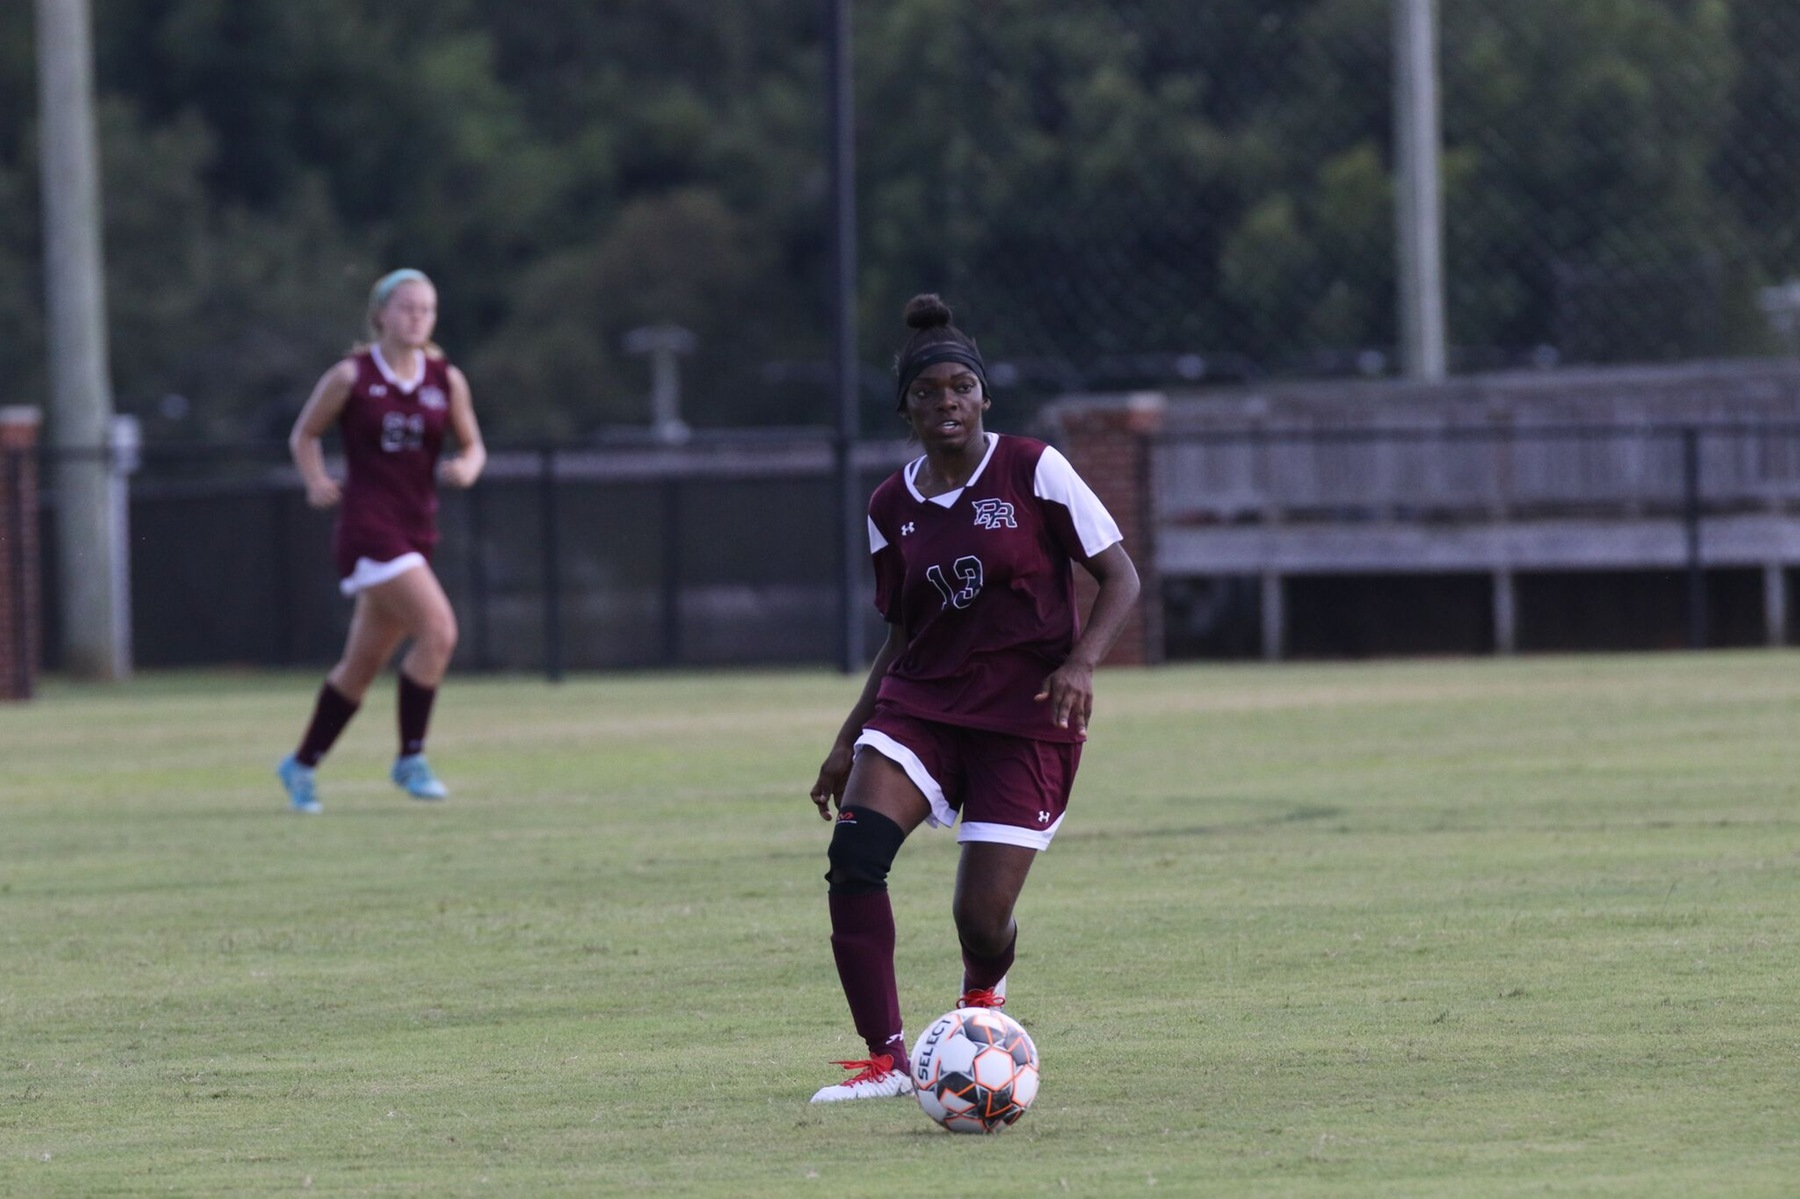 Pearl River's women's soccer team defeated East Central 1-0 on Sunday at ECCC. (ECCC ATHLETICS)